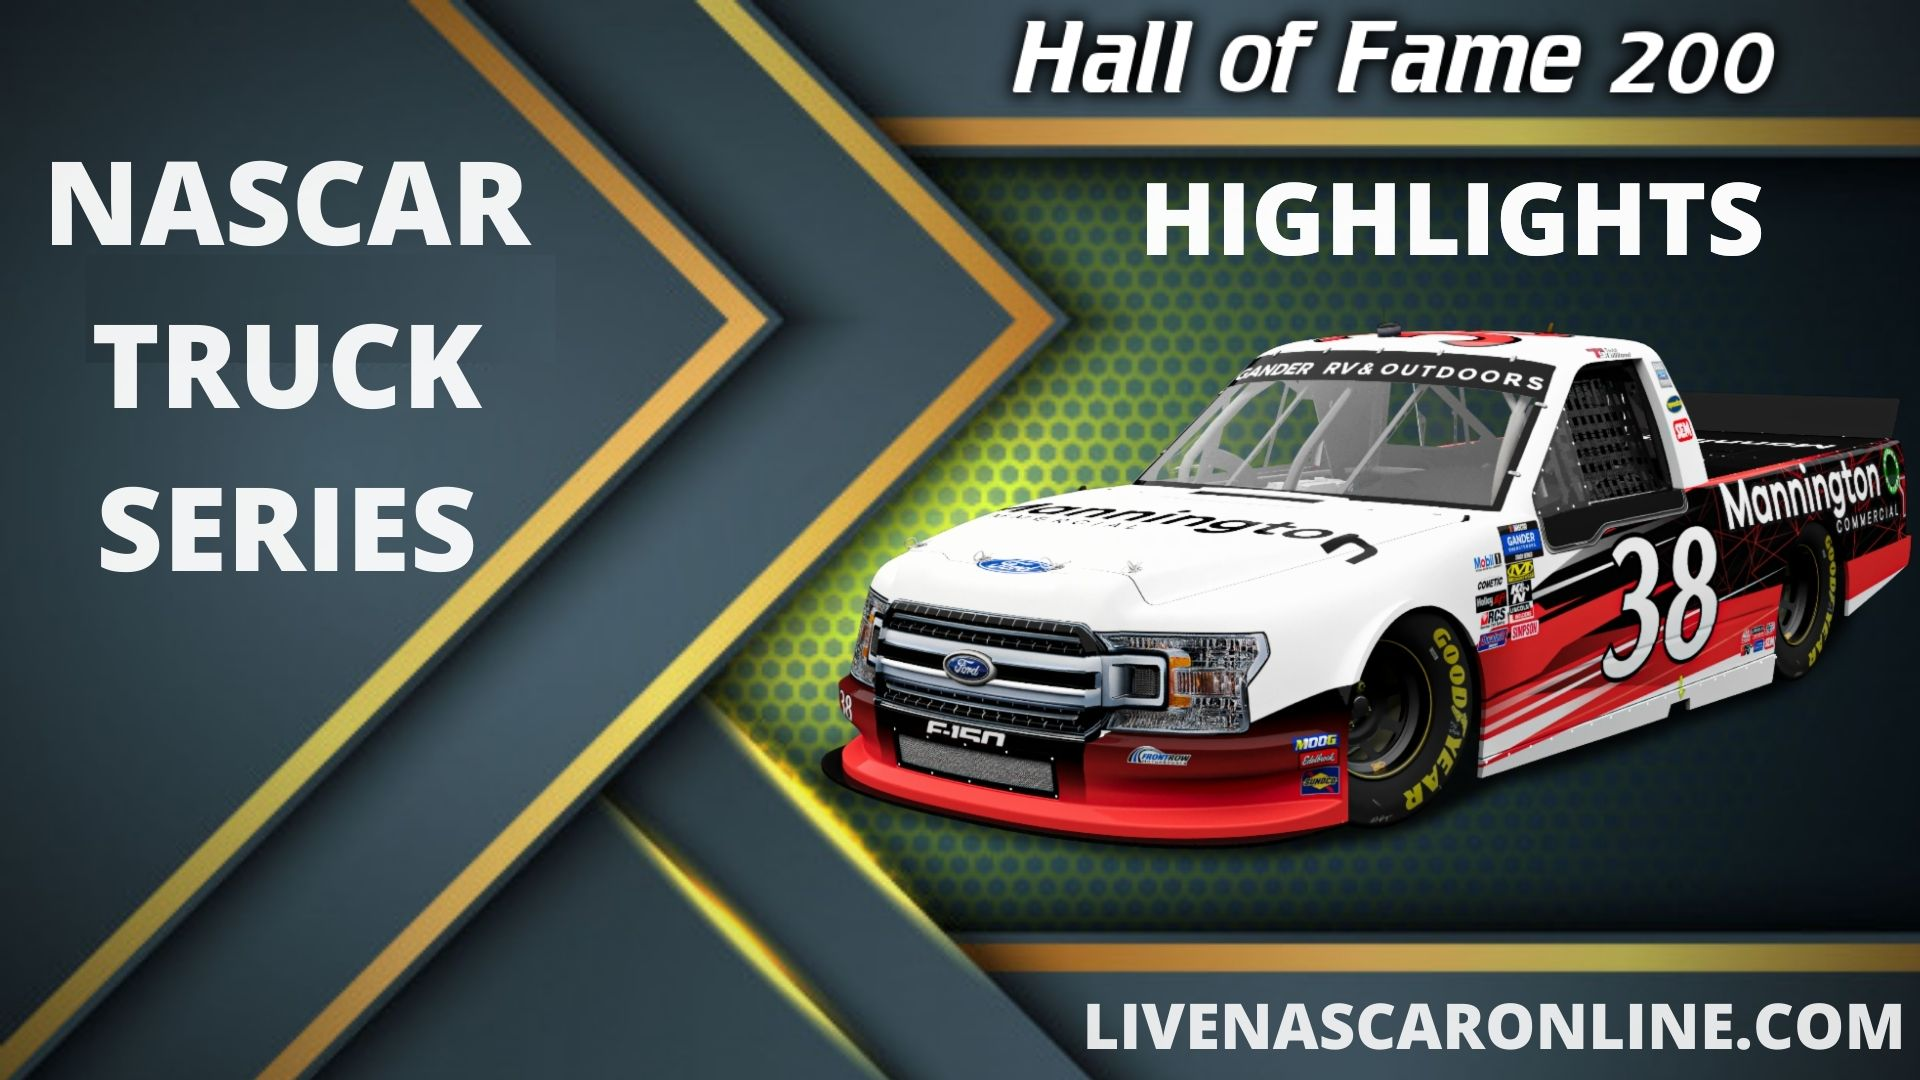 Hall of Fame 200 Highlights 2020 Truck Series